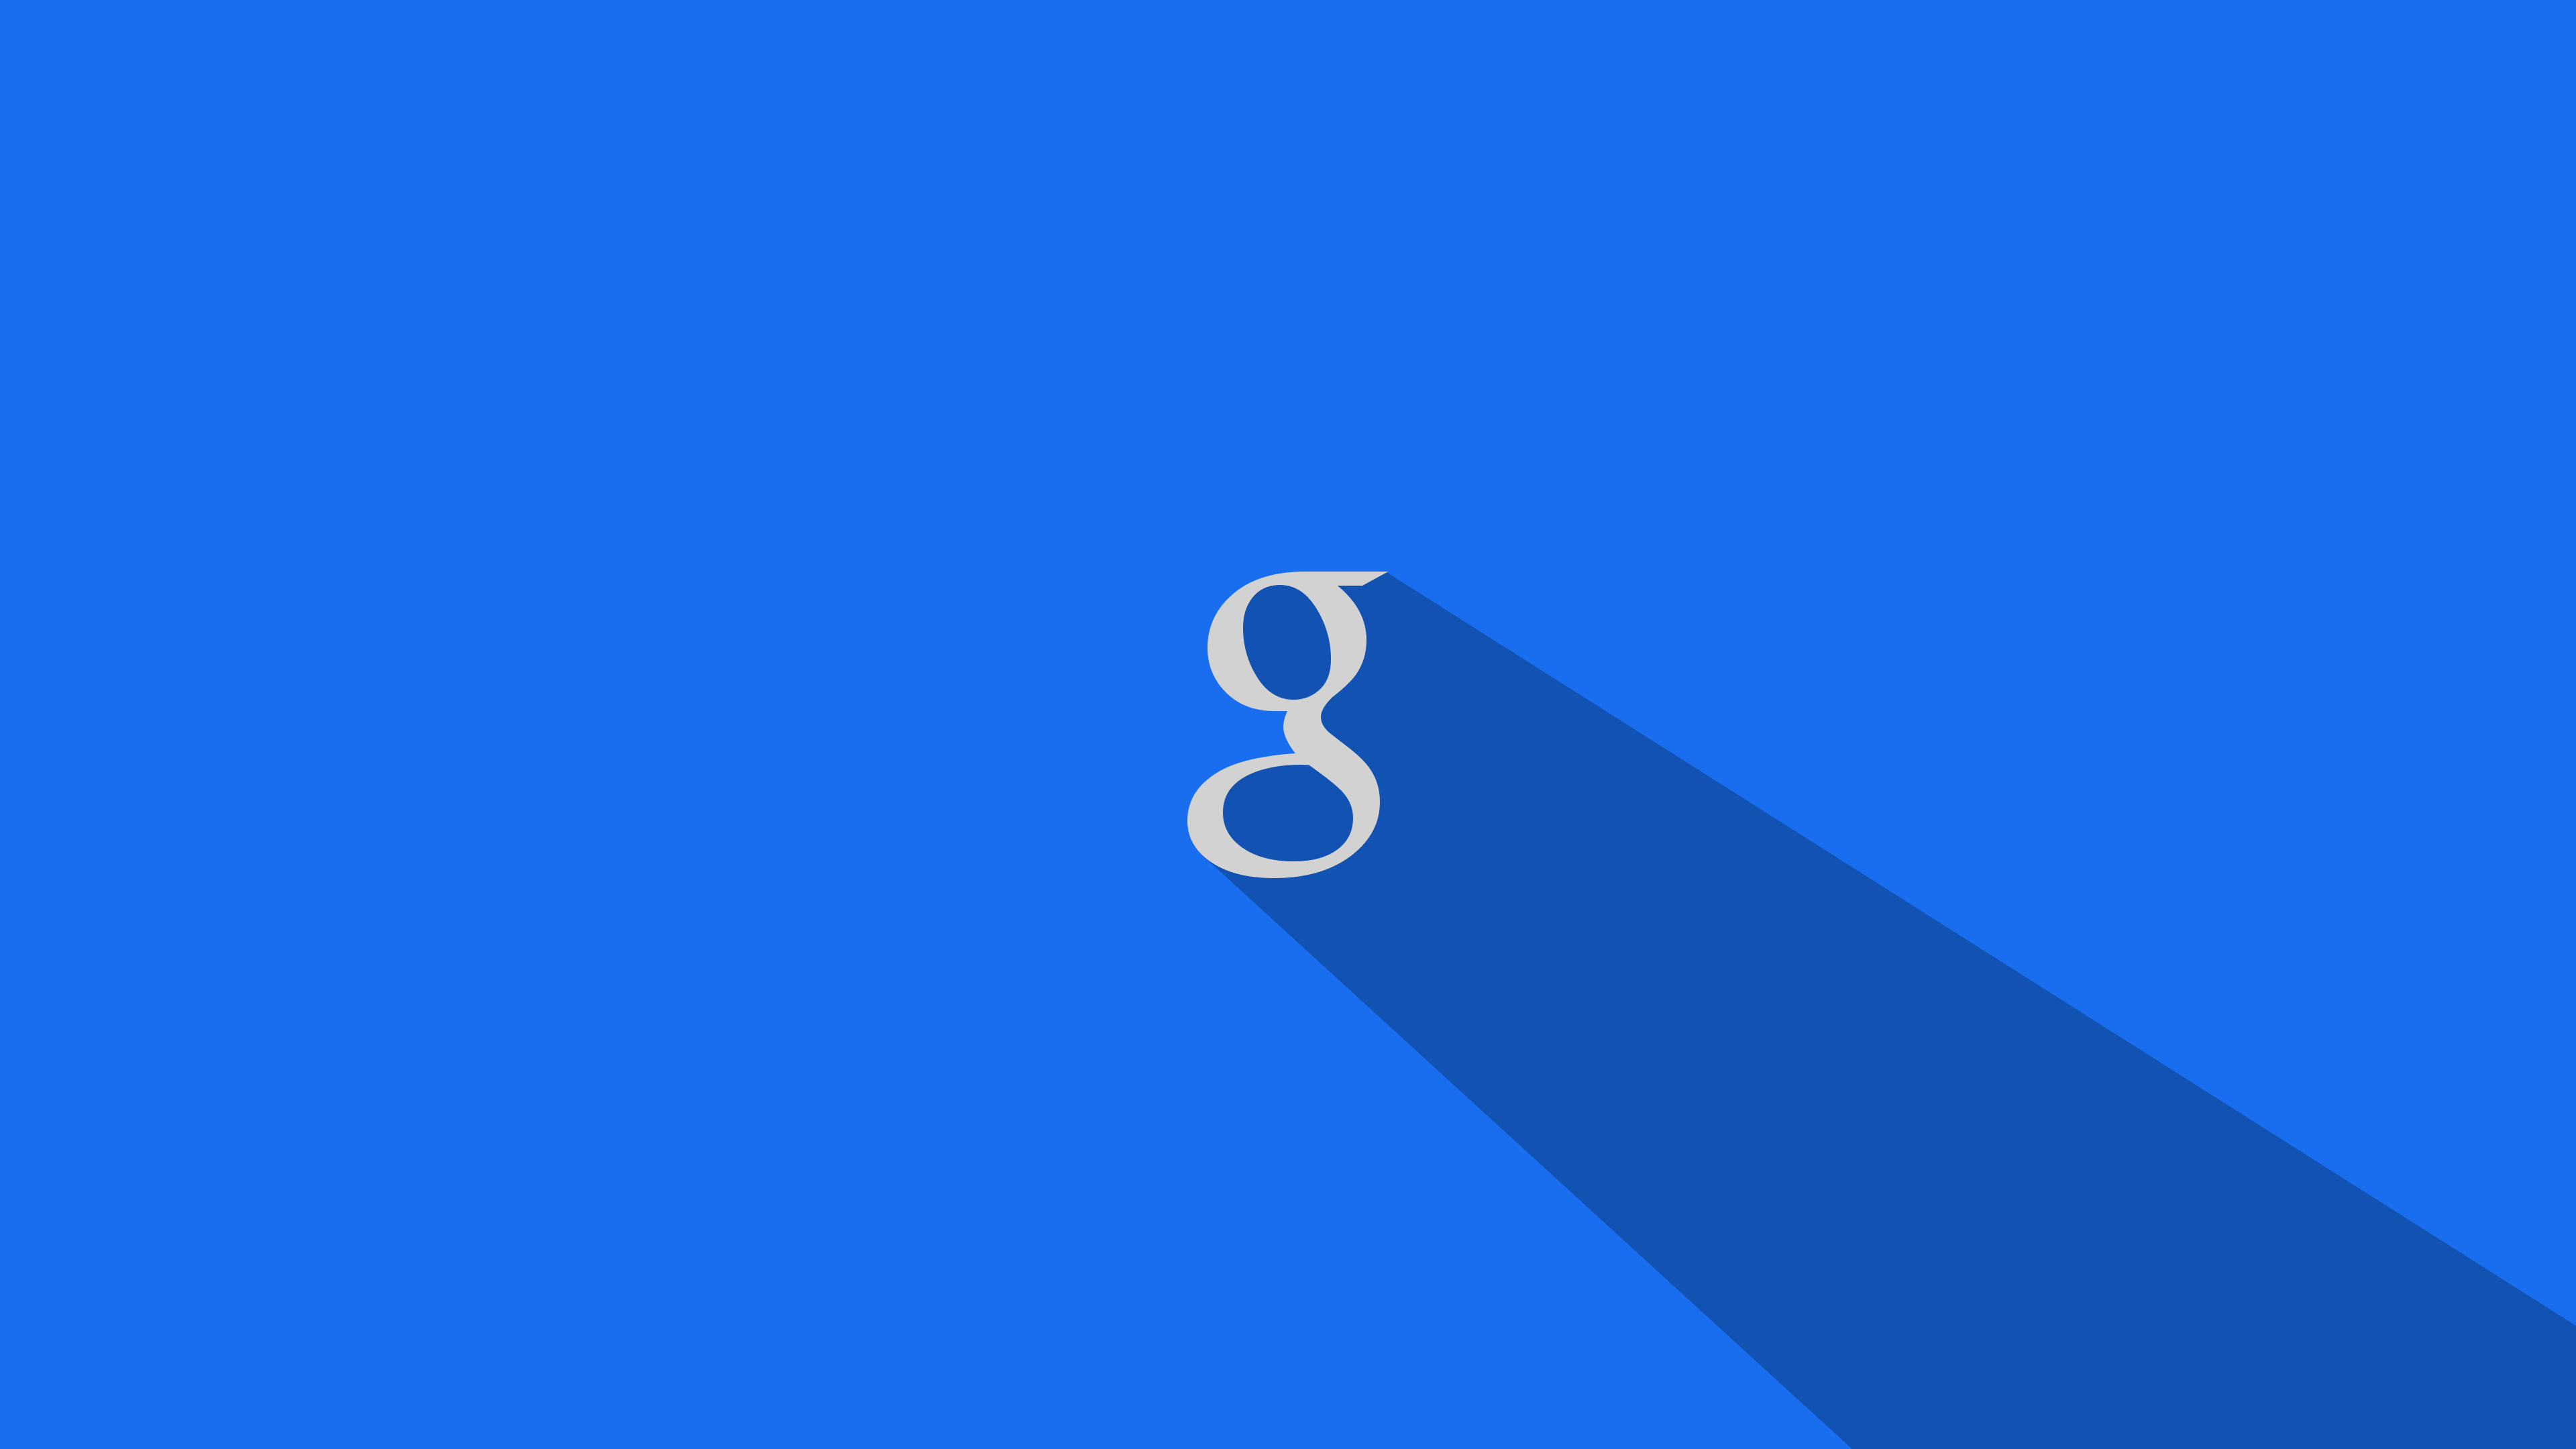 Google Wallpaper Long Shadow in 4K by lotsanewstuff 3840x2160